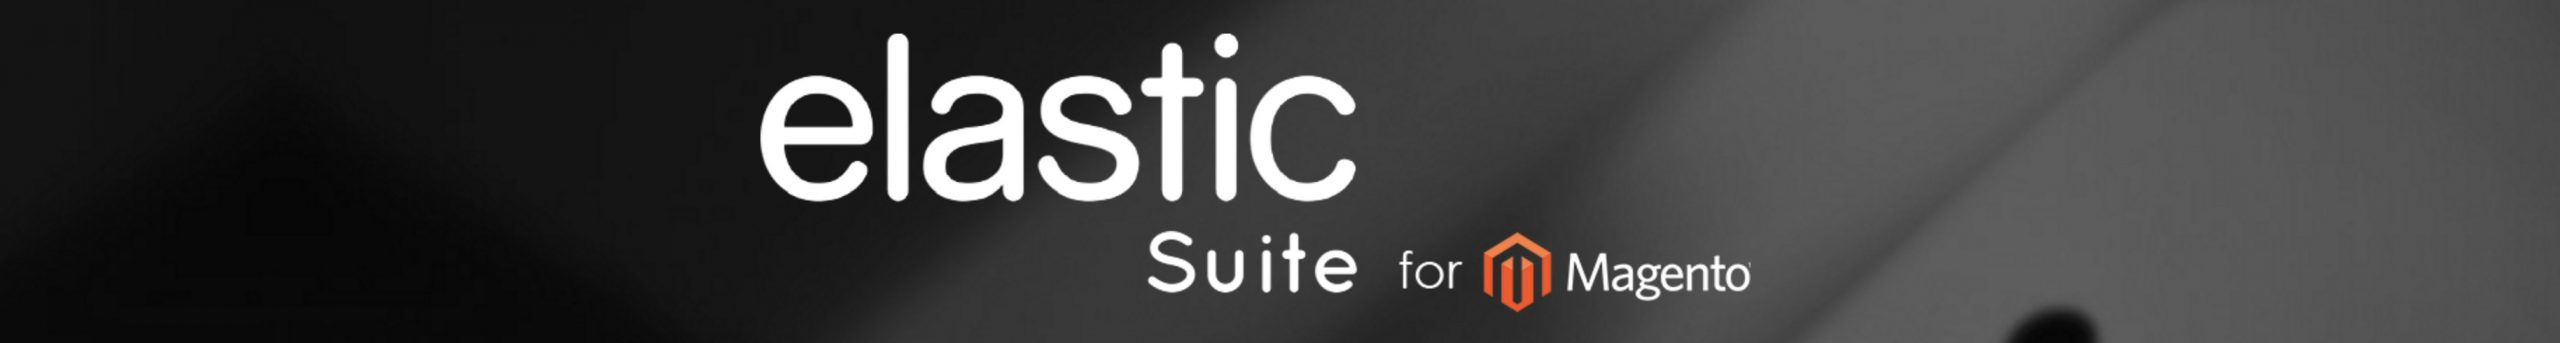 Review of ElasticSuite Magento 2 Extension for Search Optimization